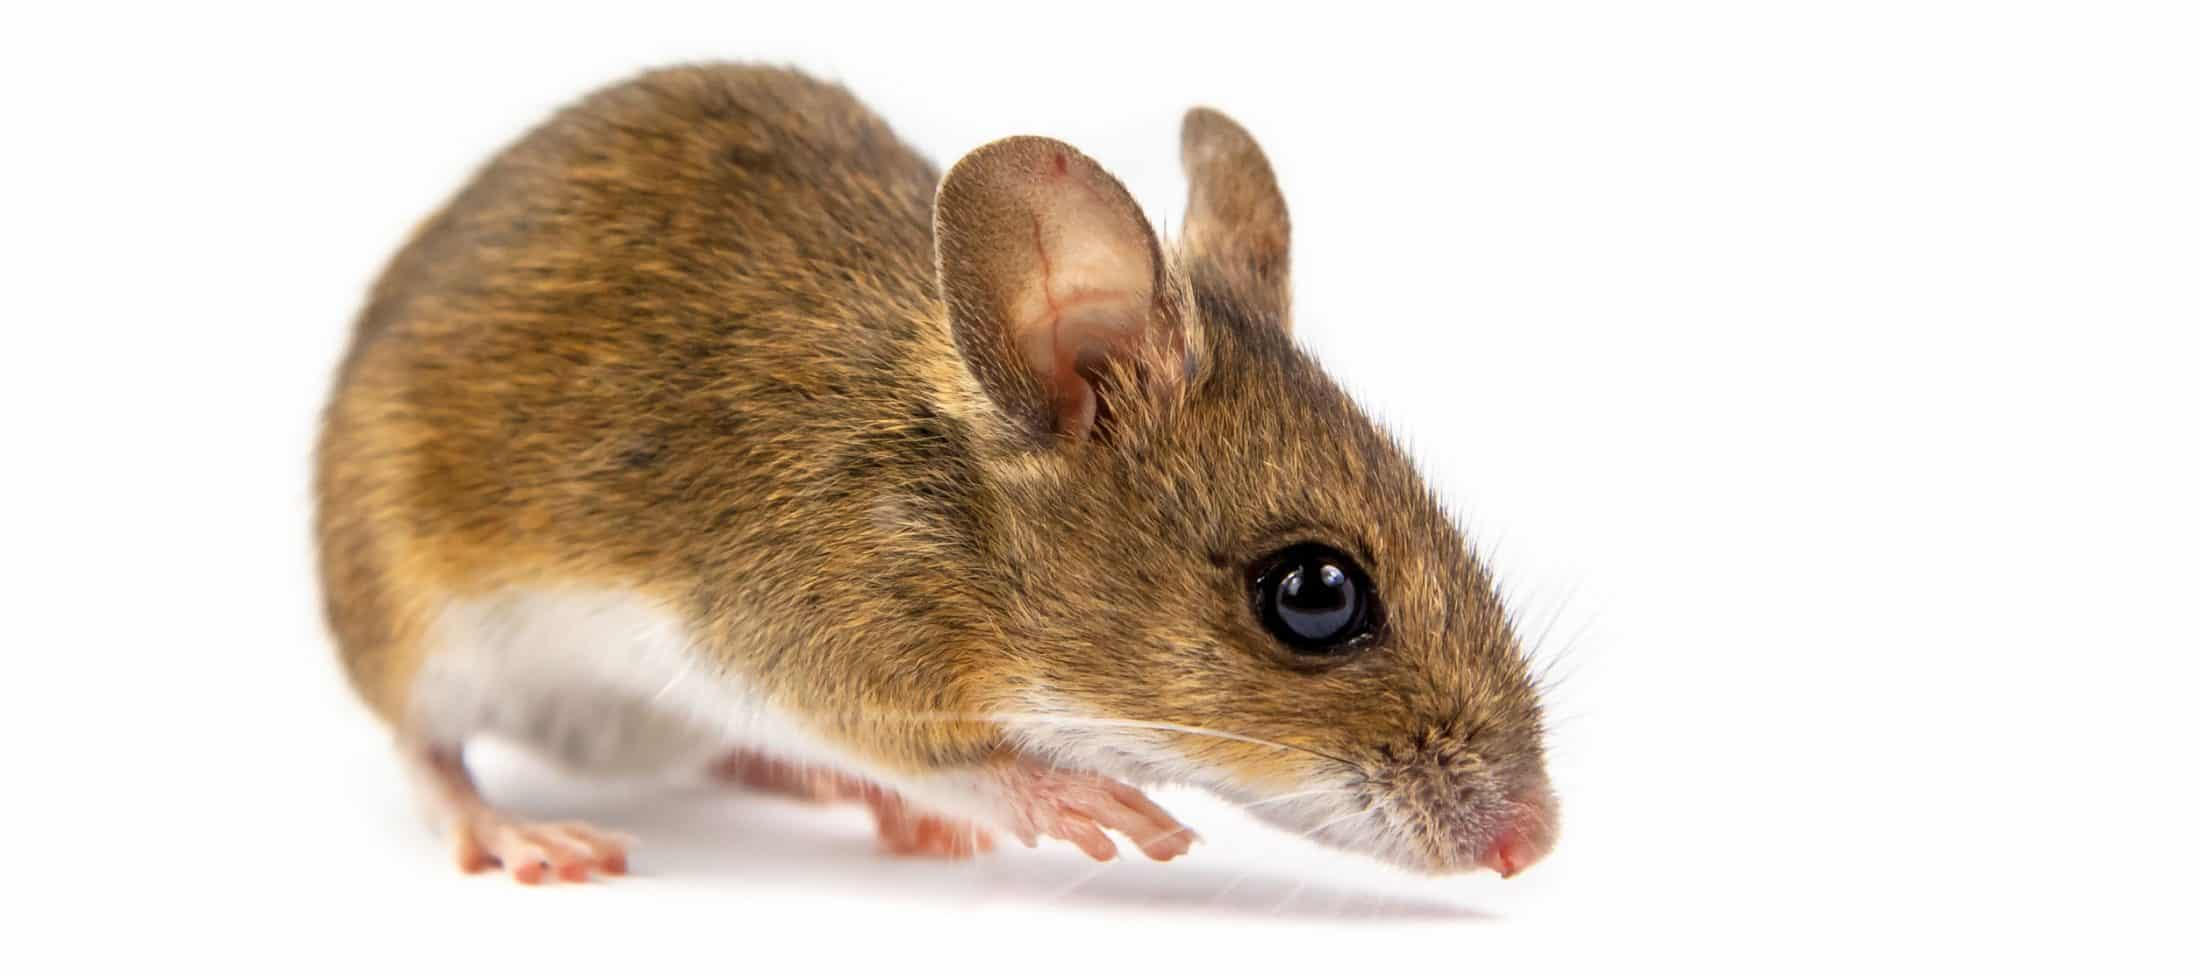 Mouse in front of white background